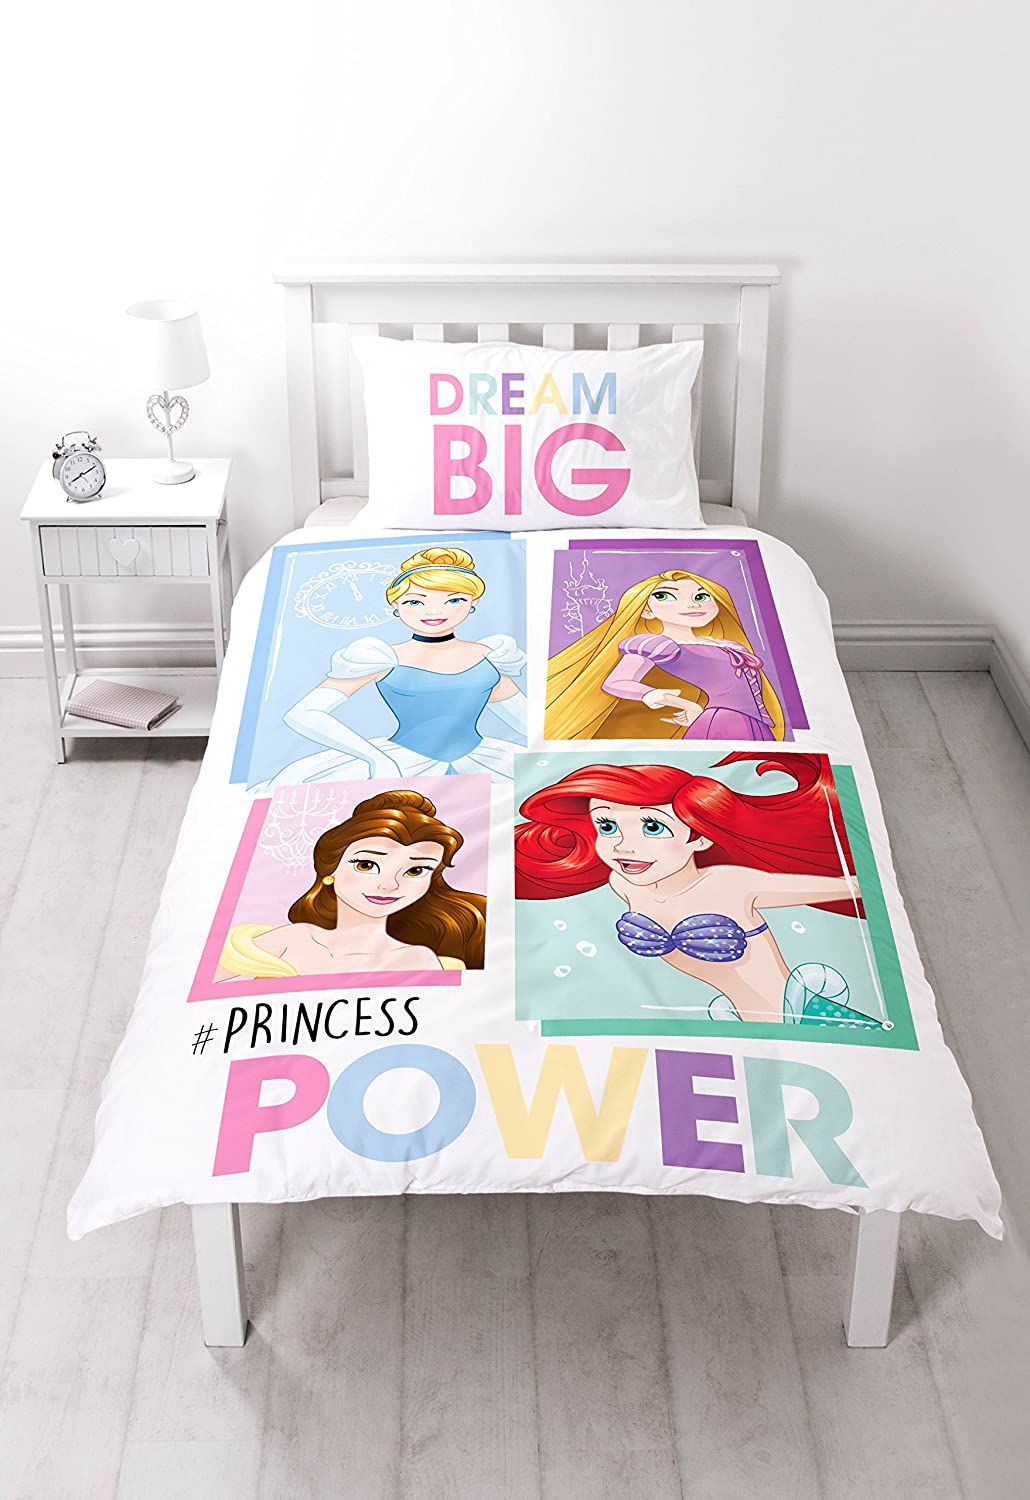 Disney Princess 'BRAVE' Single Duvet Set - Large Print Design Character World DPCBRVDS002UK1